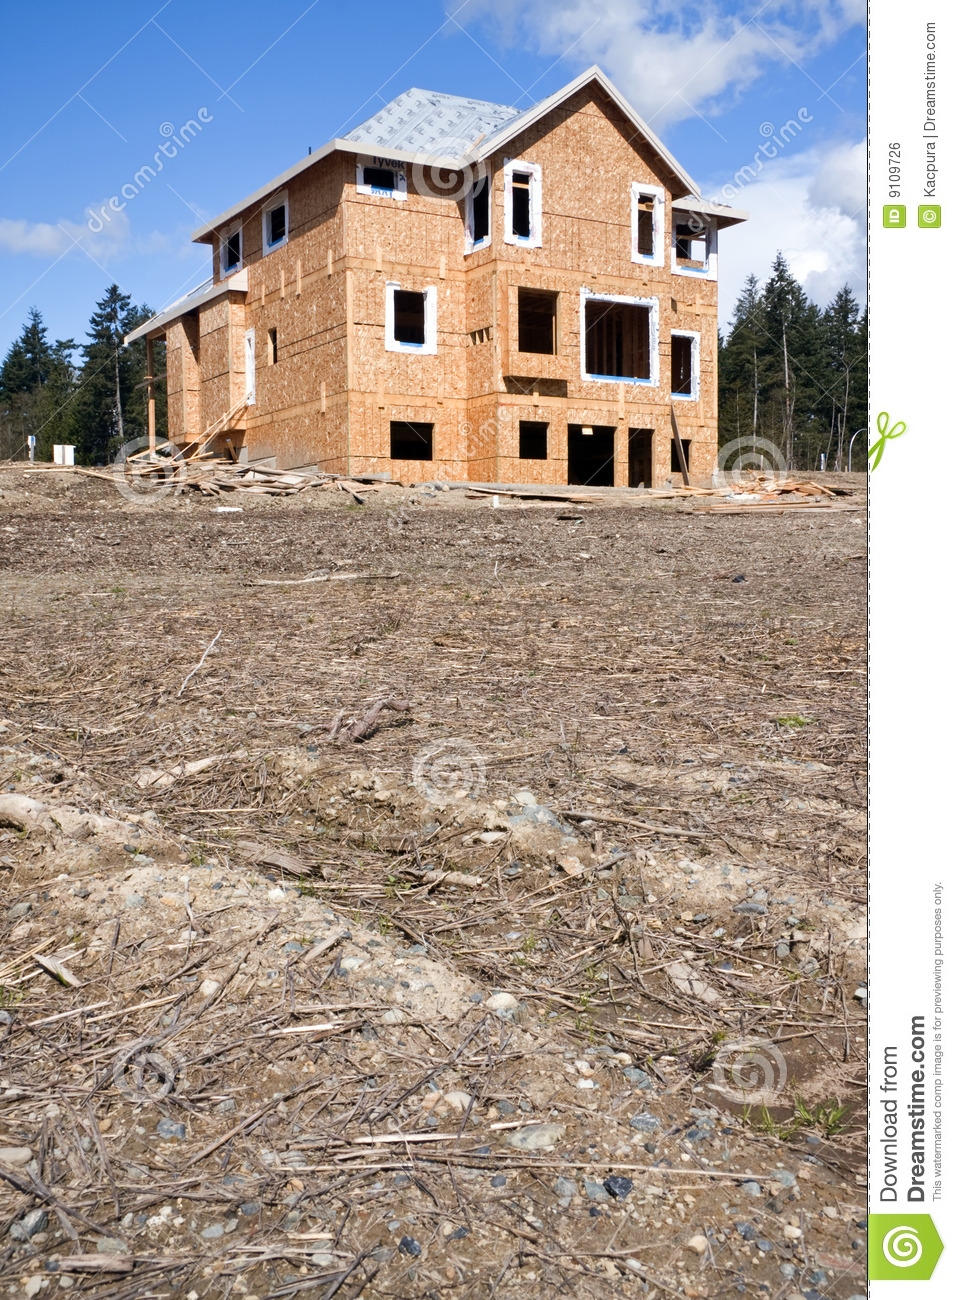 Download New House Under Construction Stock Photo - Image of roof, residential: 9109726